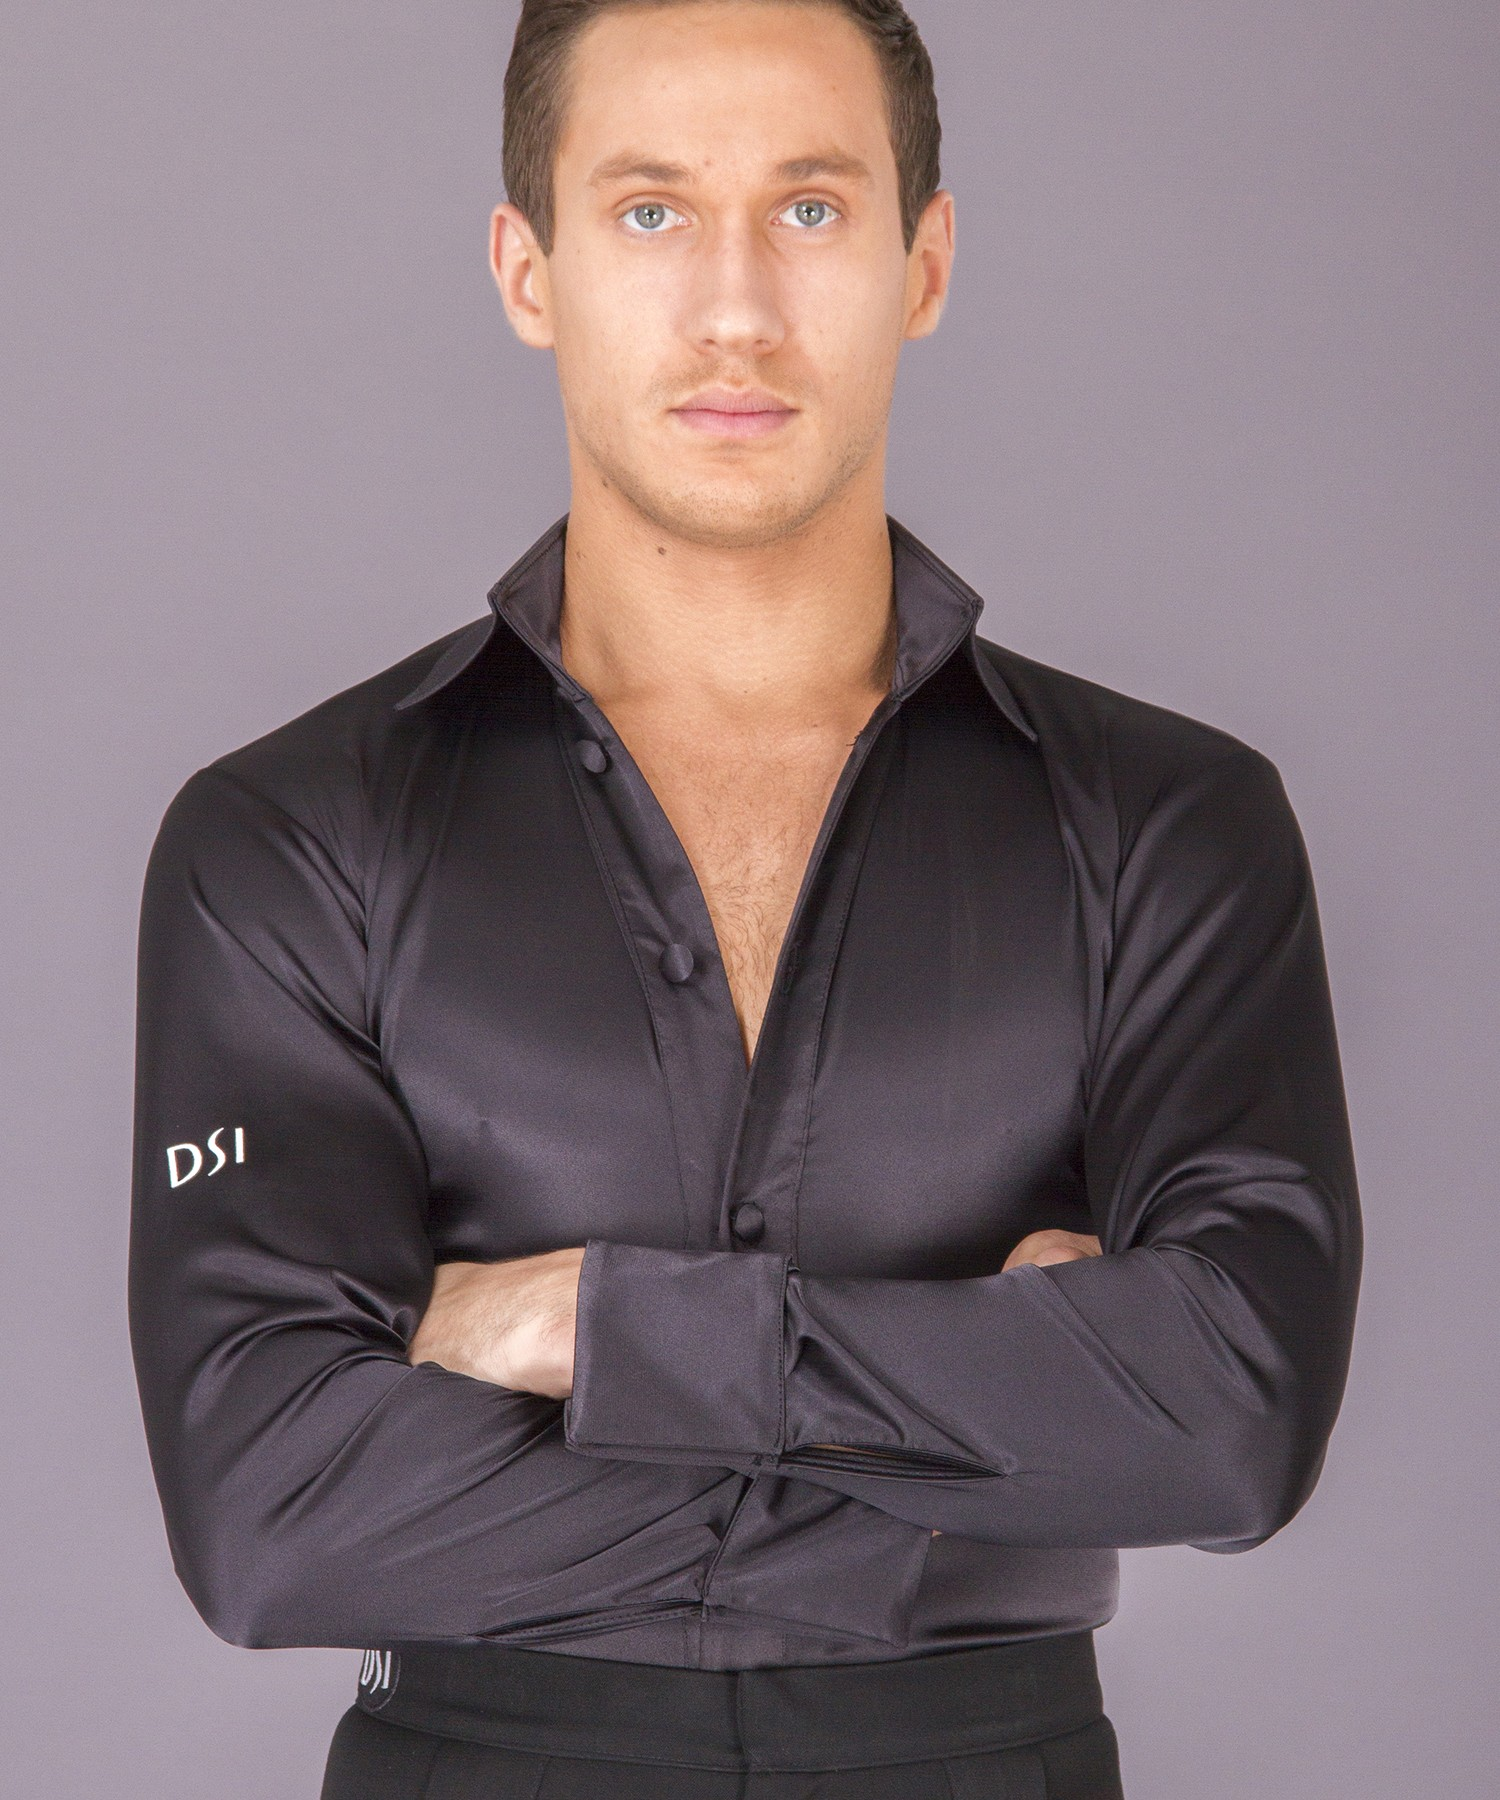 Shop for and buy mens satin robe online at Macy's. Find mens satin robe at Macy's.